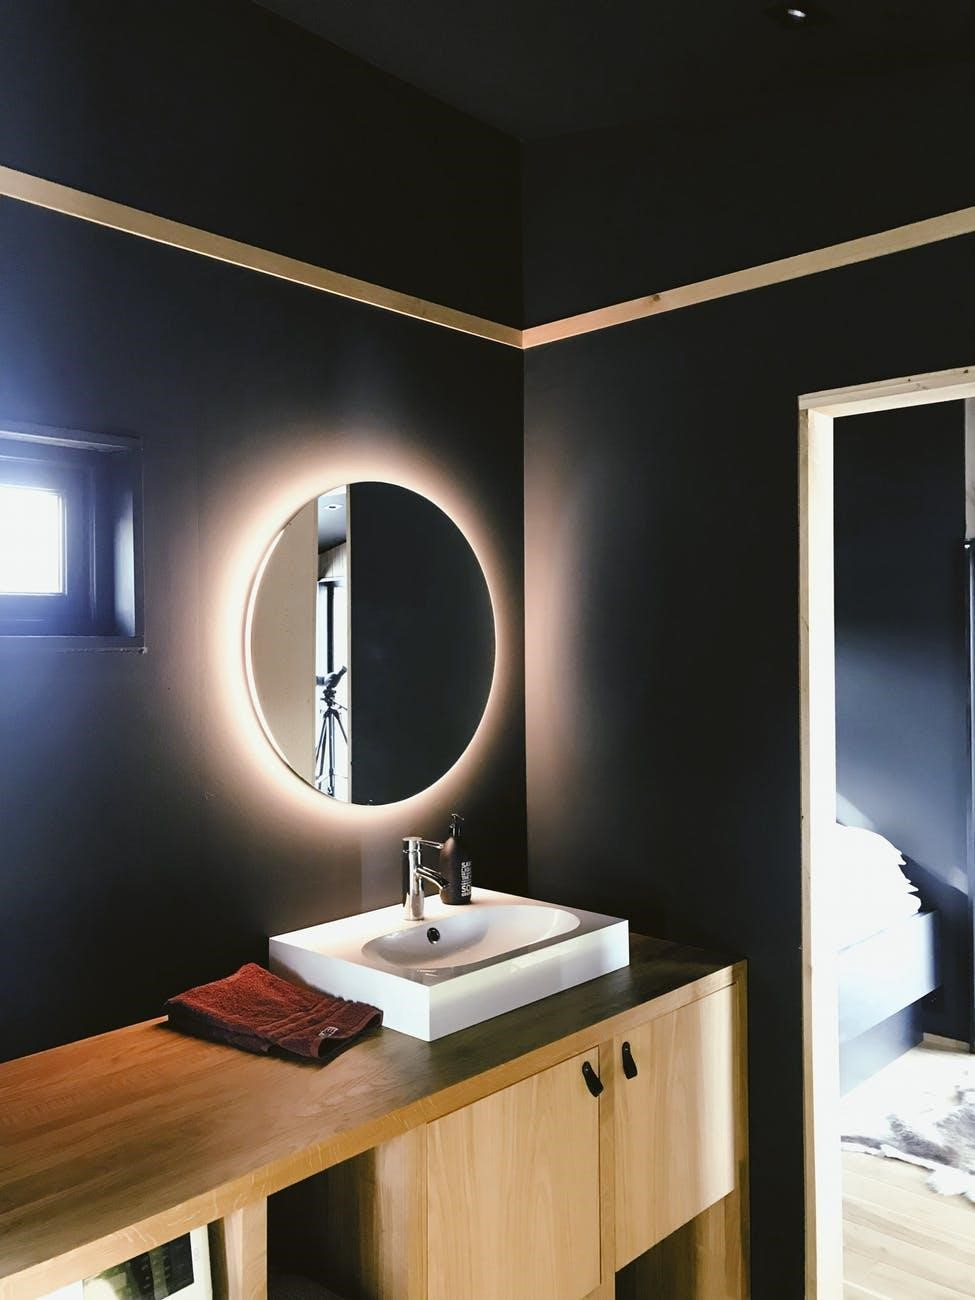 3. Get Reflective With Mirrors - Mirrors don't just show you what you can't see on your own face. They can also brighten and expand the look and feel of your room. Adding a simple wall mirror to your bathroom will give it a fresh, more spacious appearance. Try hanging an oval mirror over a VIGO vessel bathroom sink and just watch as the water reflects upwards. Both round and square mirrors have their benefits, so think about what you like best and where your priorities lie. Are you looking to maximize space or focus on artistic dimension? To really make the most of the layout you're working with, try to find a mirror that offers backlighting so you can have a two-in-one situation.Image source: Julie Aagaard